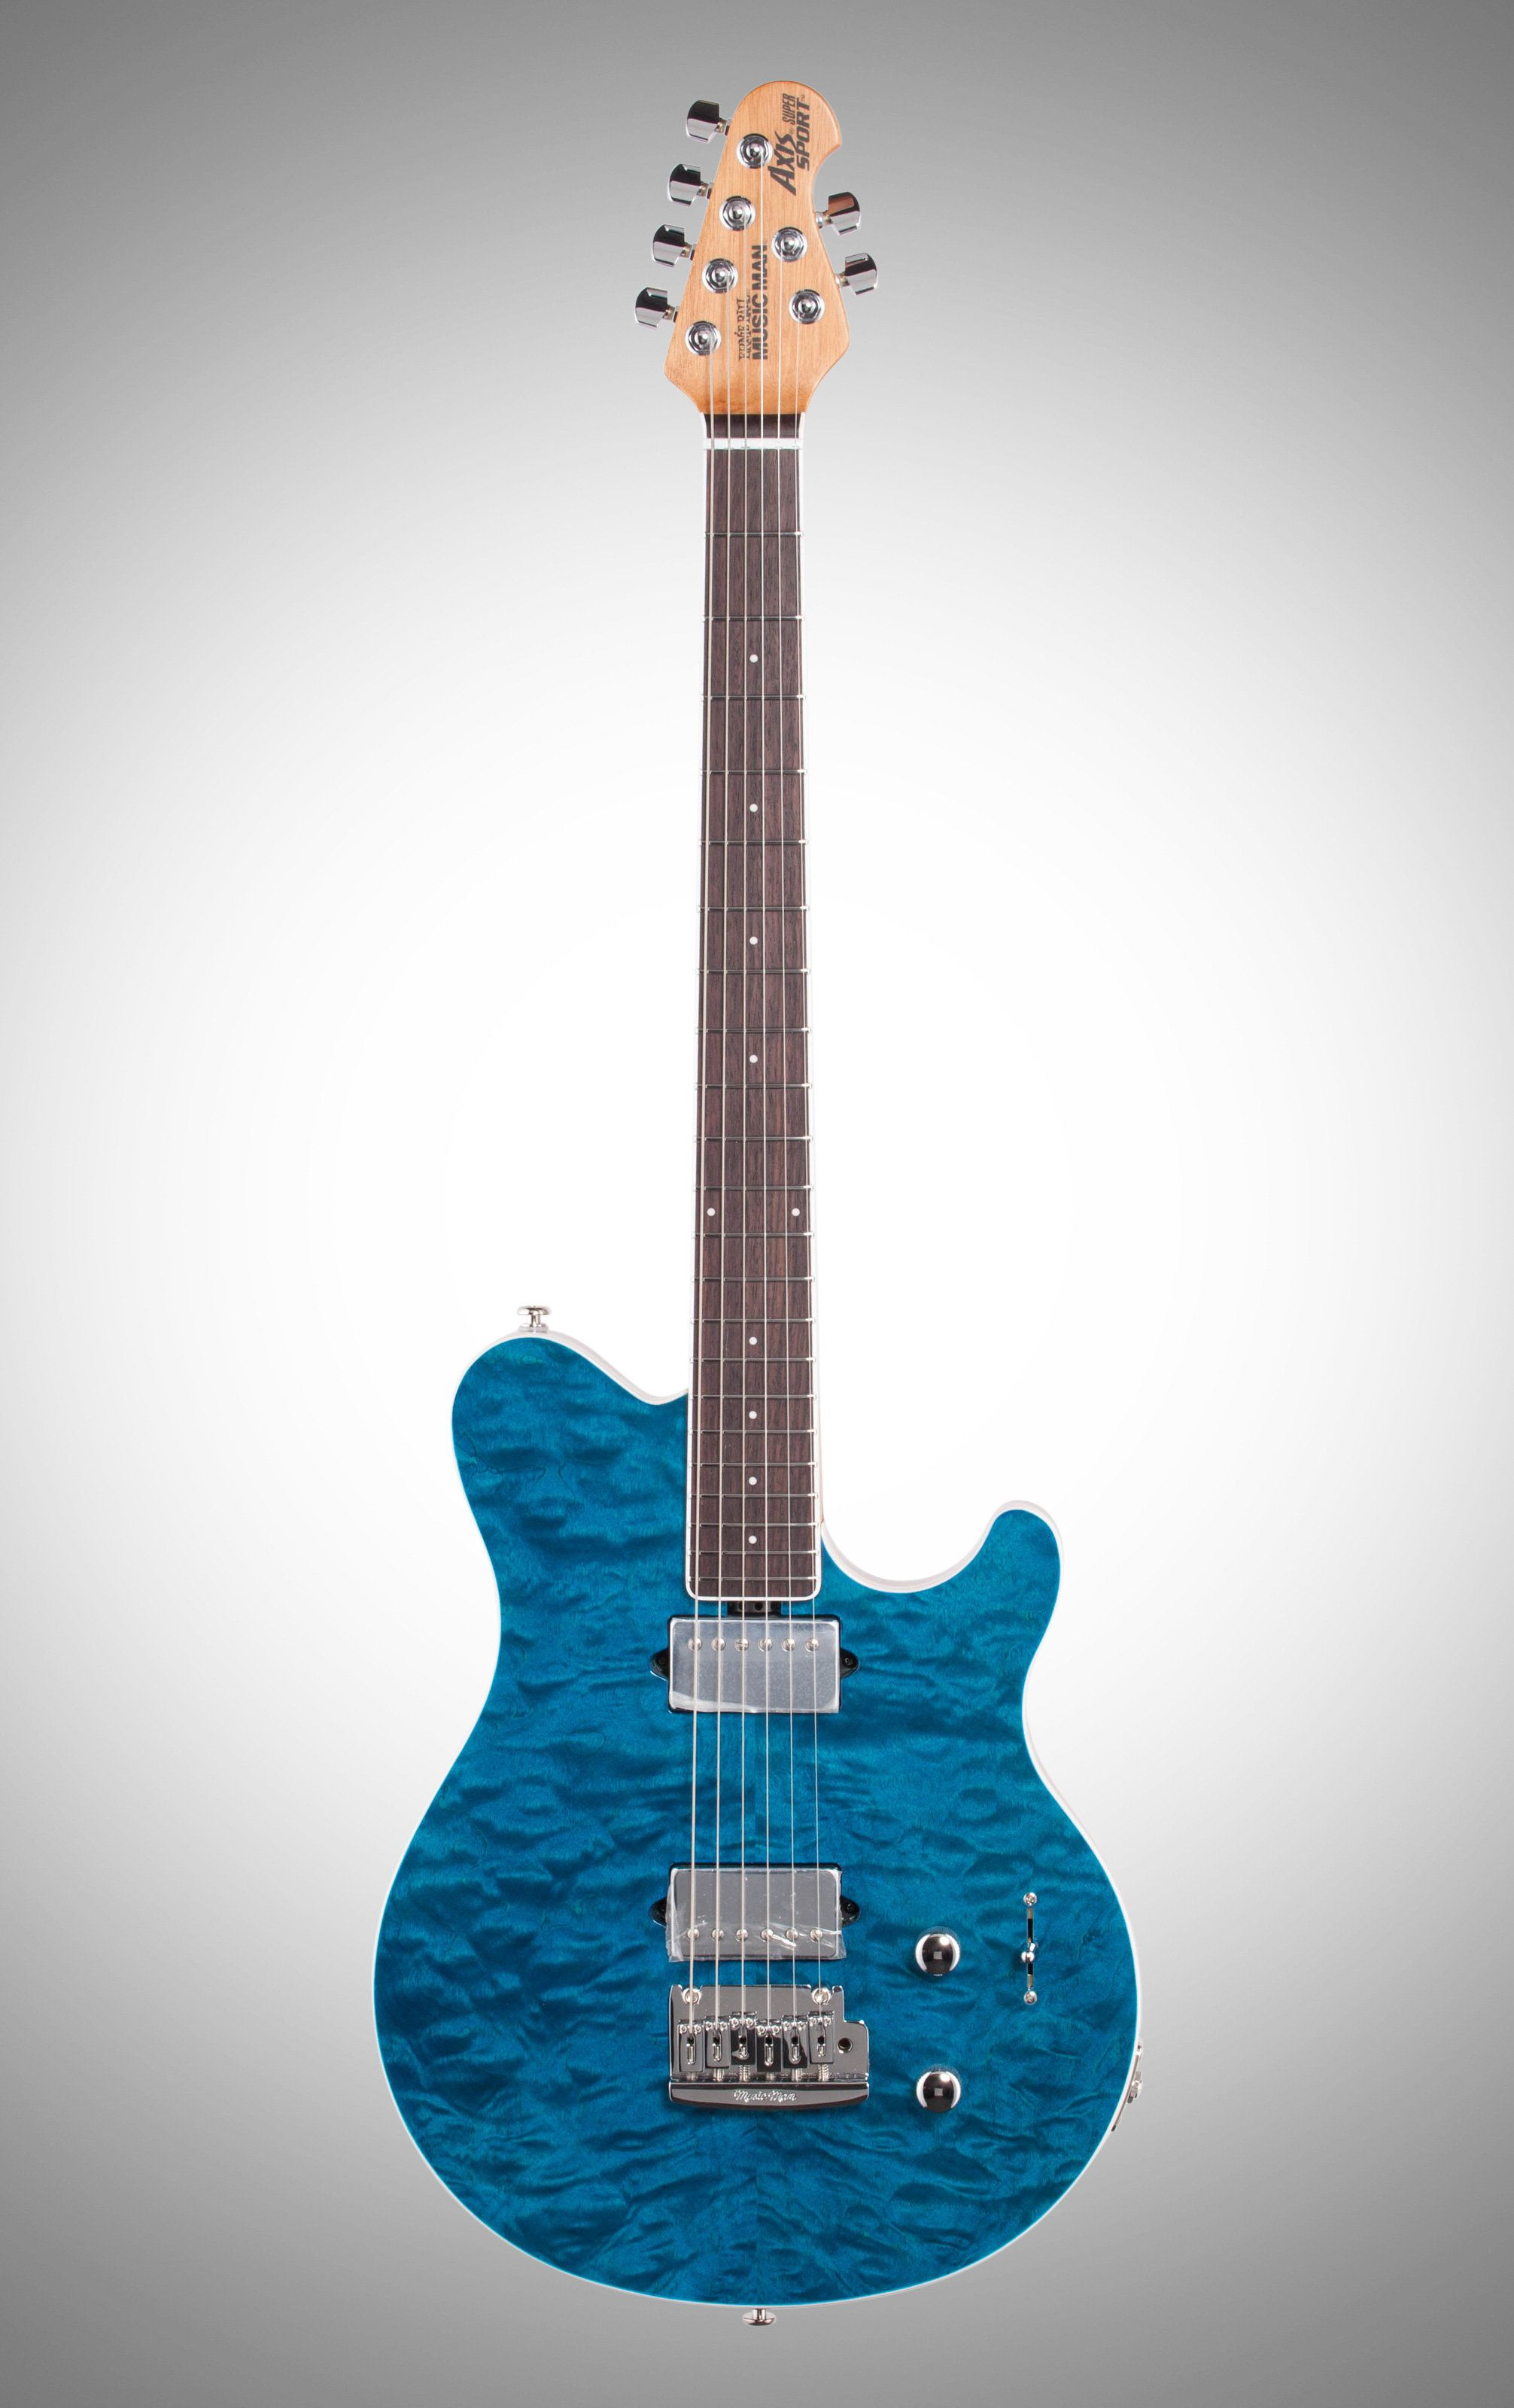 ernie ball music man bfr axis super sport electric guitar trans blue finish guitars in 2019. Black Bedroom Furniture Sets. Home Design Ideas